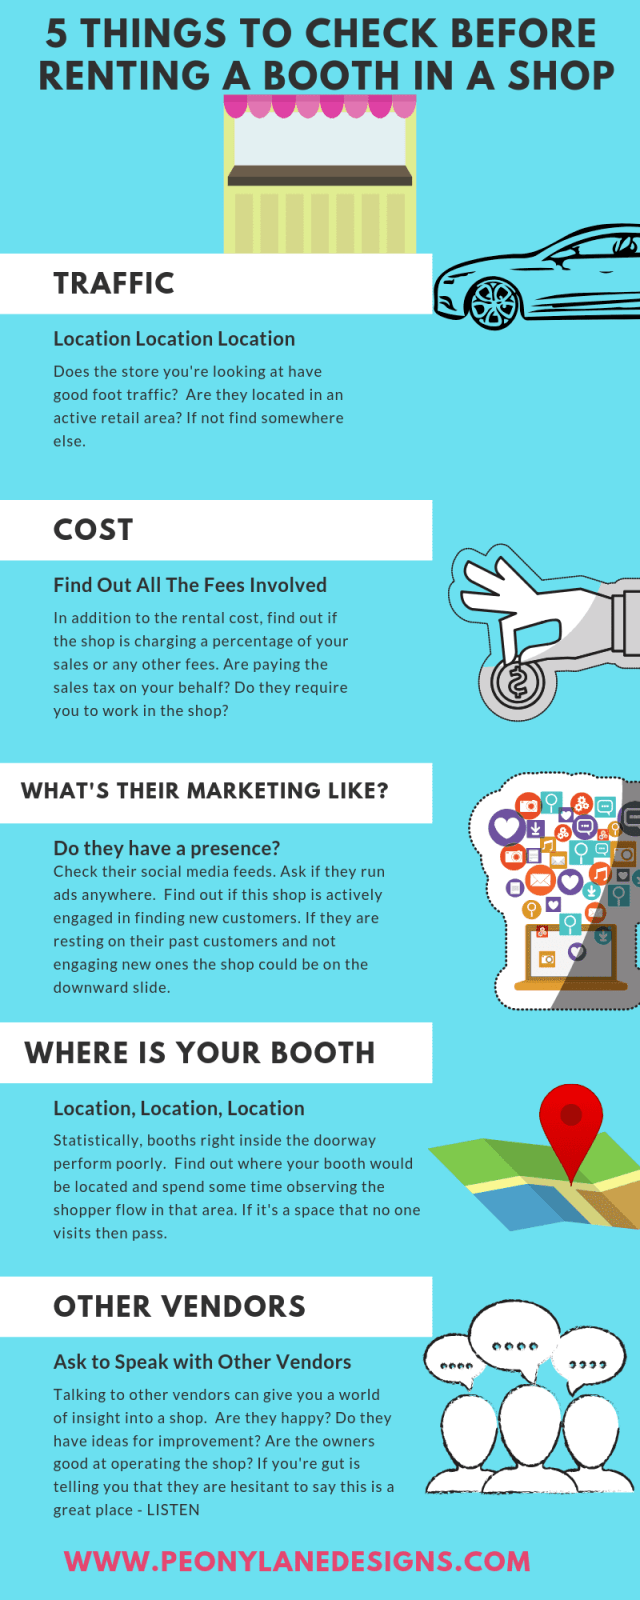 Renting a Booth // retail sales tips // boutique market // sales tips retail //retail business //retail life // retail tips // retail store // retail shop